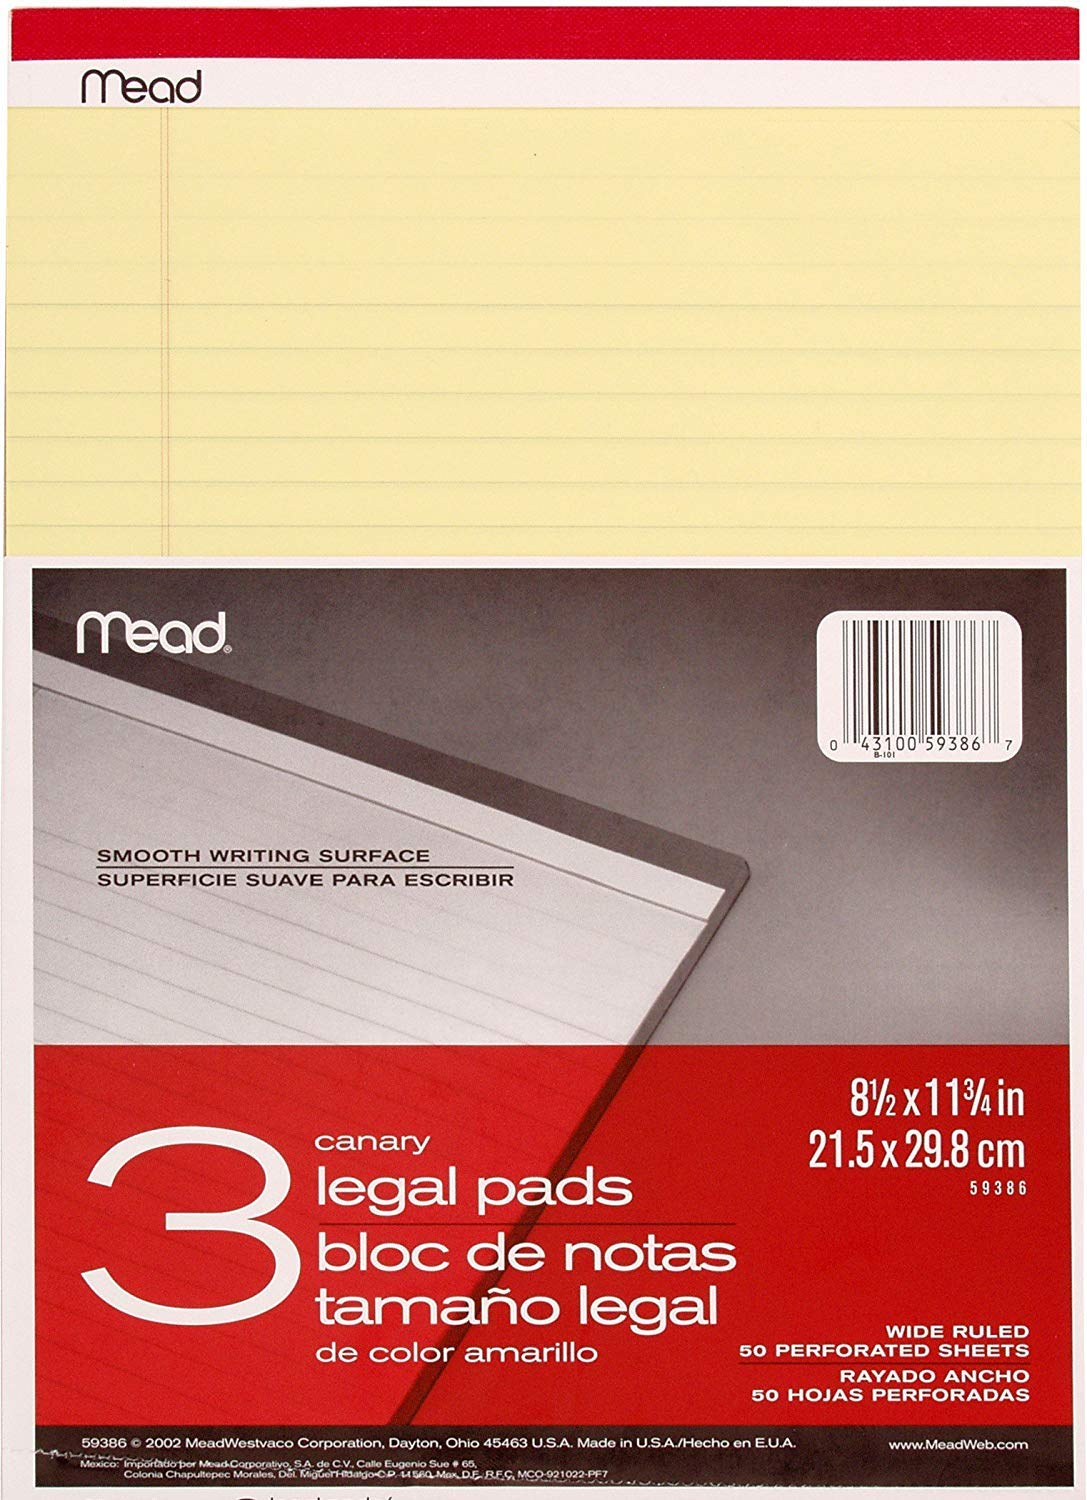 Mead Canary Legal Pads, 8.5 X 11.75 Inches, 9 Pack, 50 Sheets (59386) by Mead (Image #1)